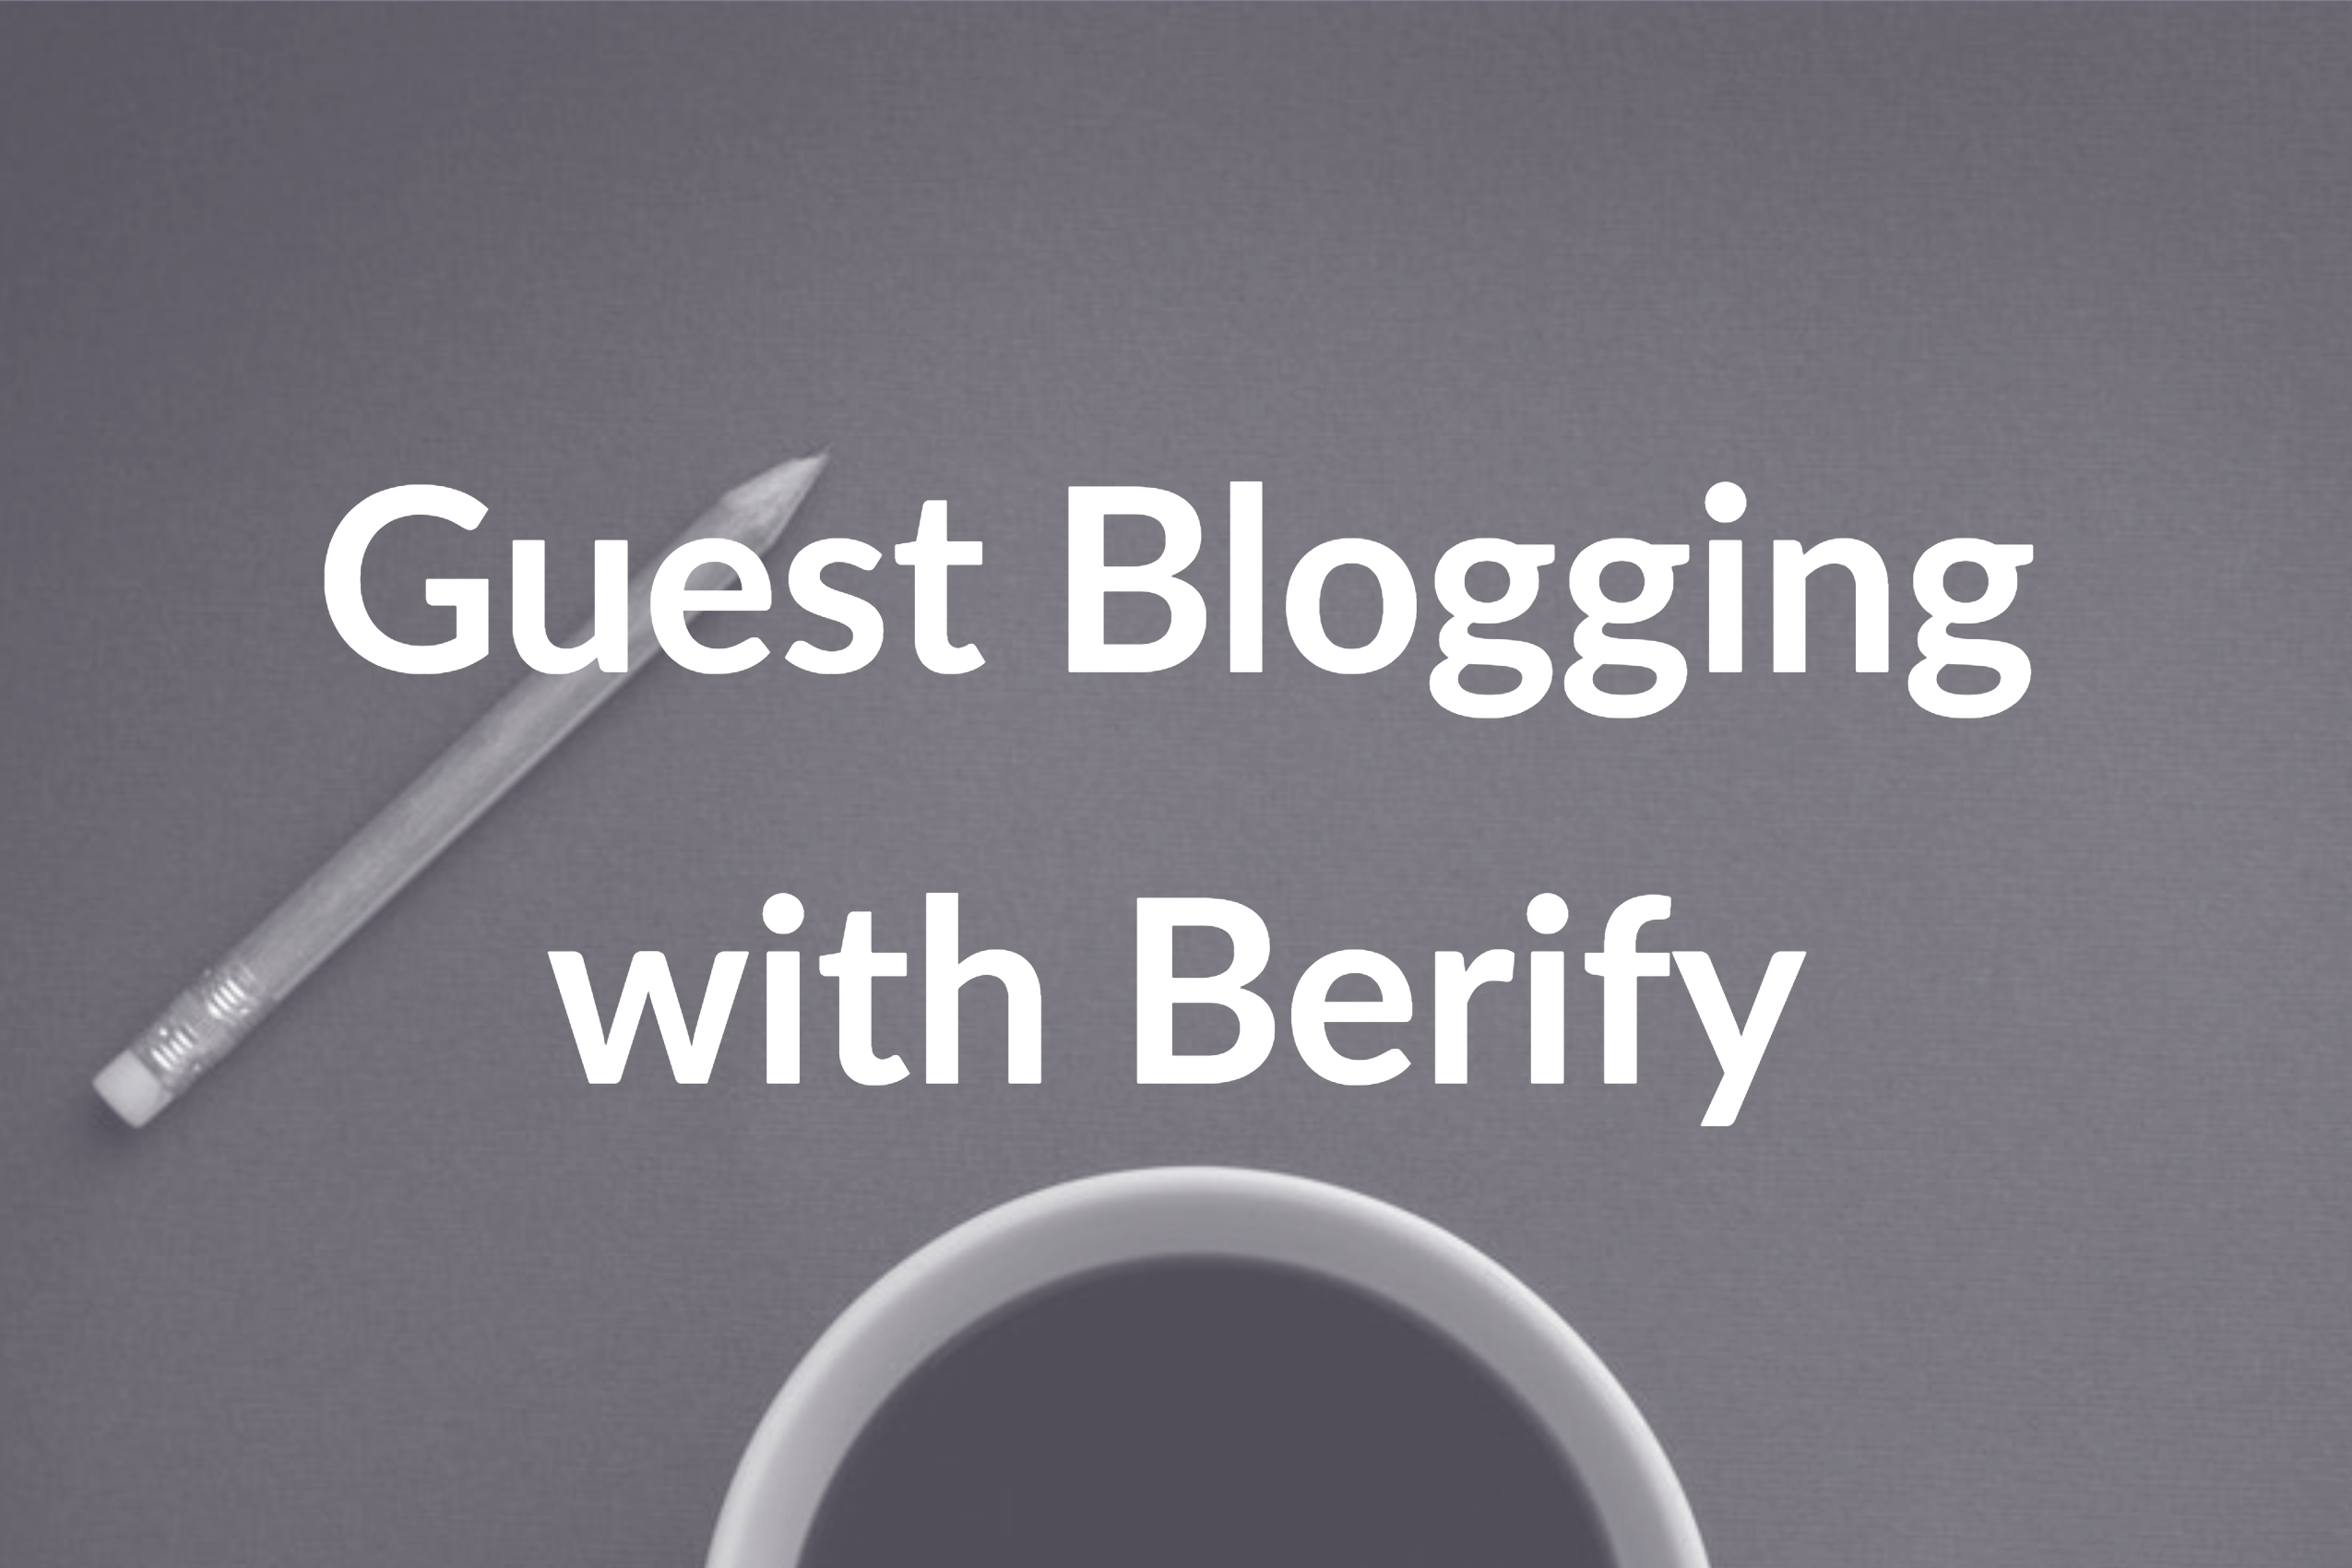 7 Foolproof Guest Blogging Tips with Berify